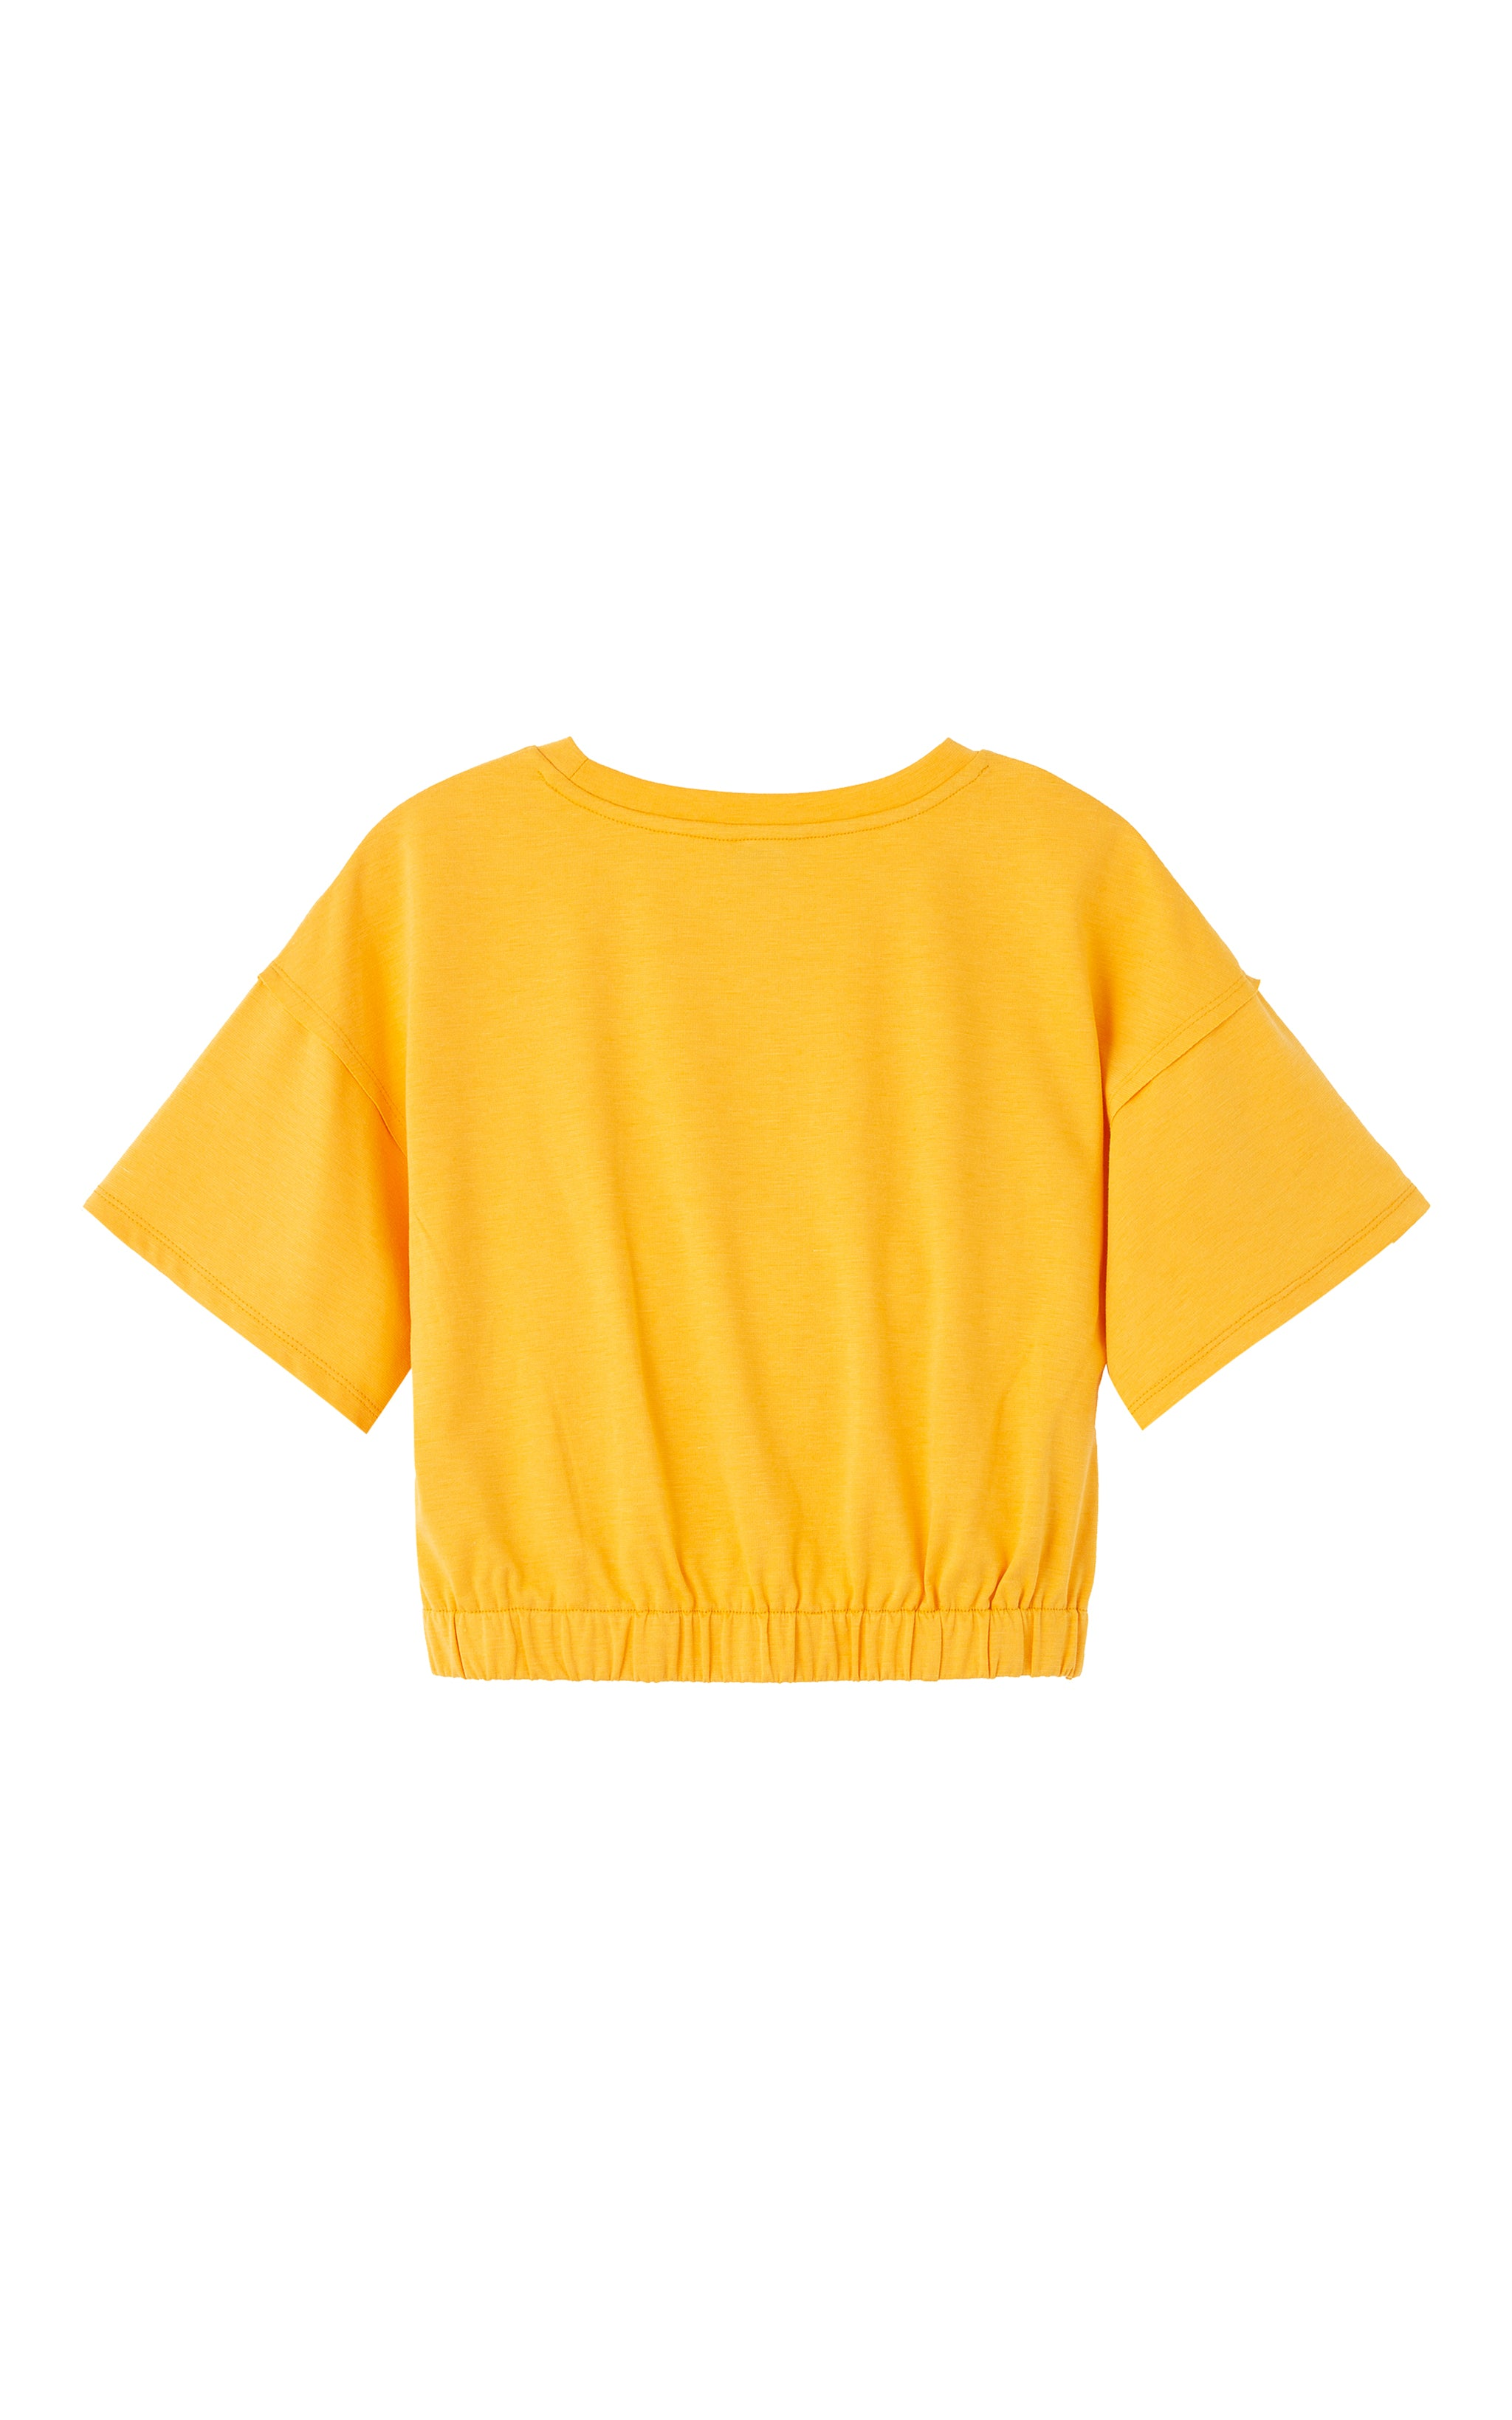 Bexley Twist Top | 7-16 - Habitual